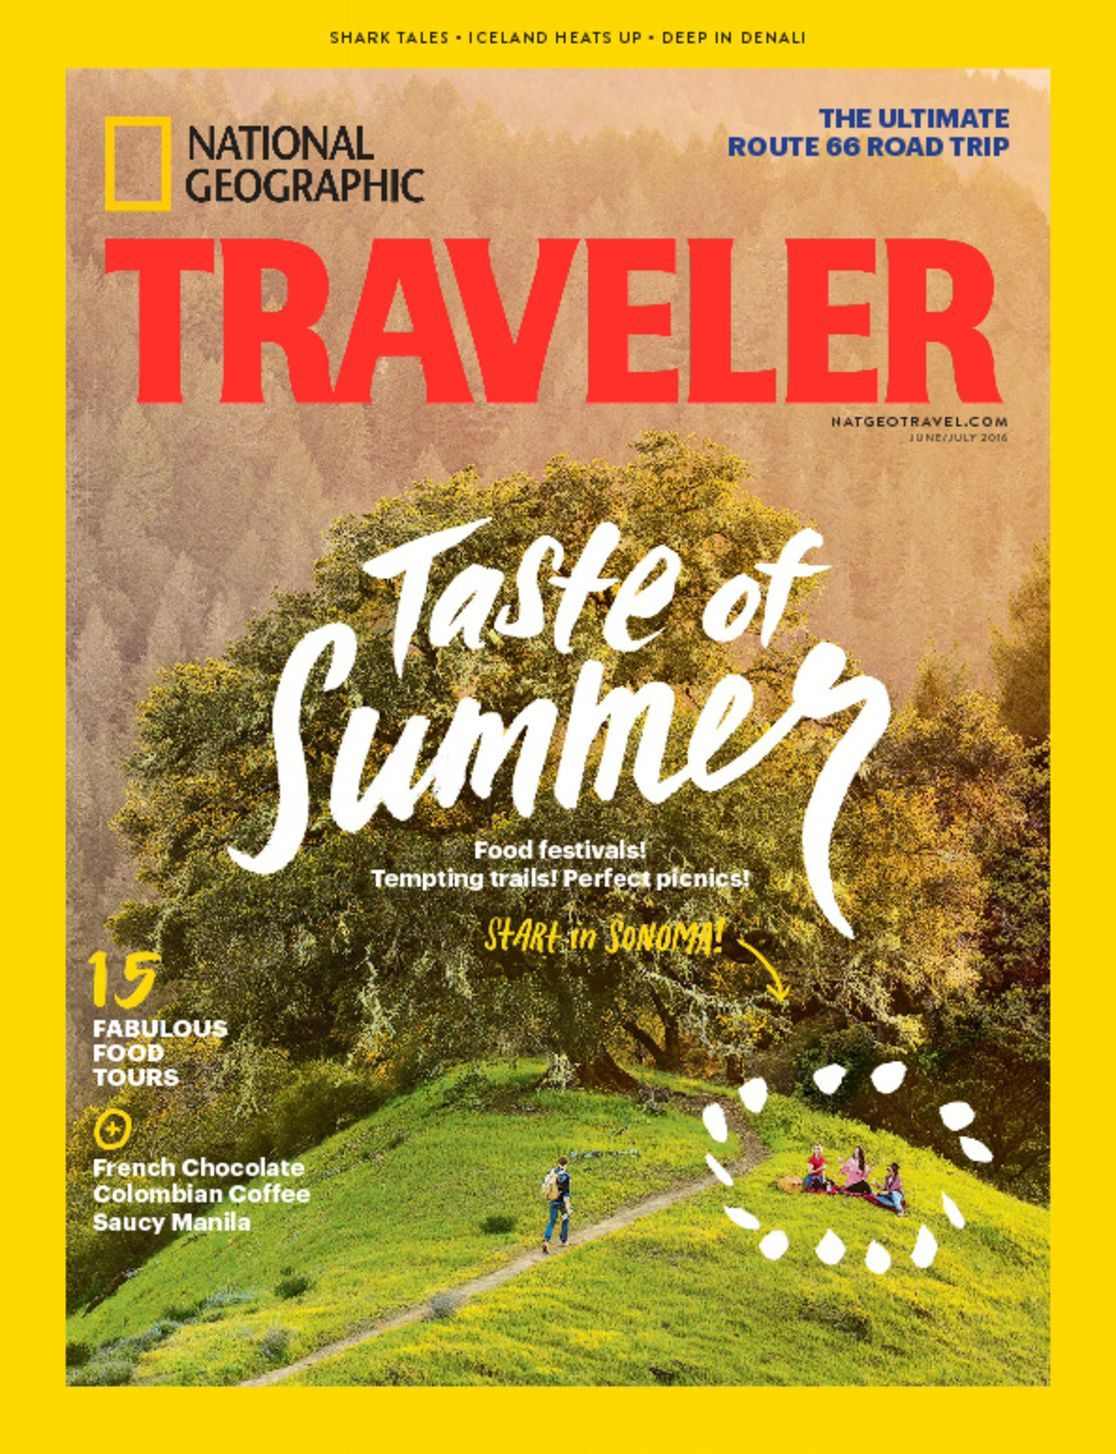 National geographic traveler interactive cracked bjmy